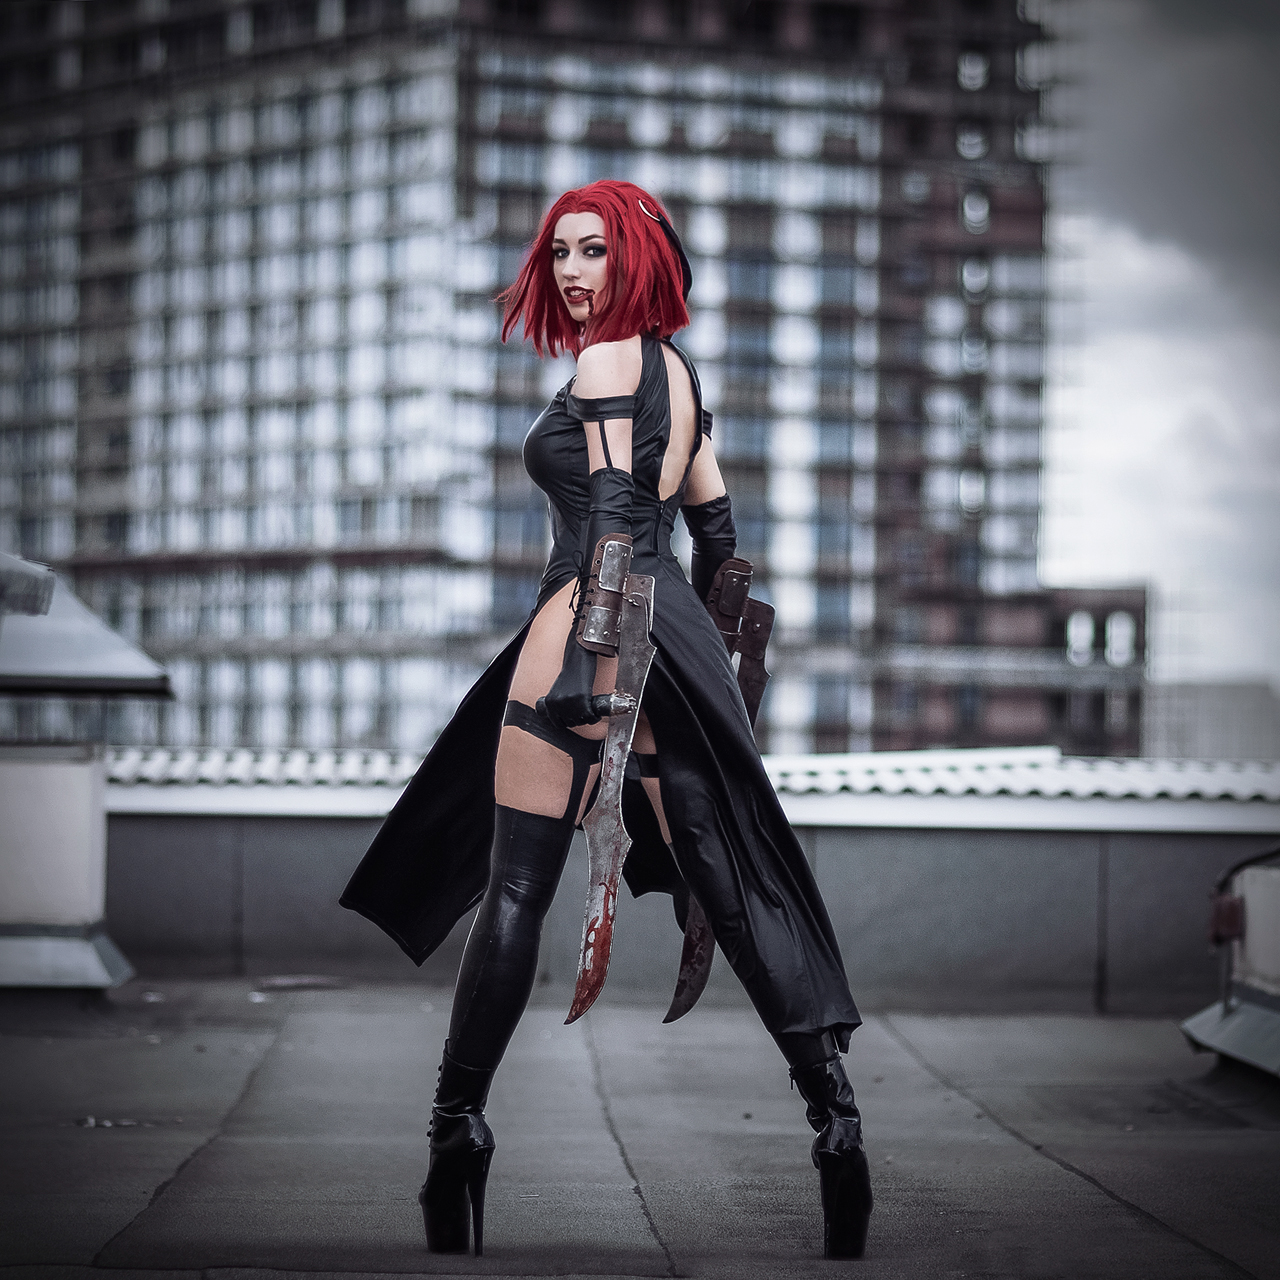 Bloodrayne 2 By Angeliquedesange On Deviantart